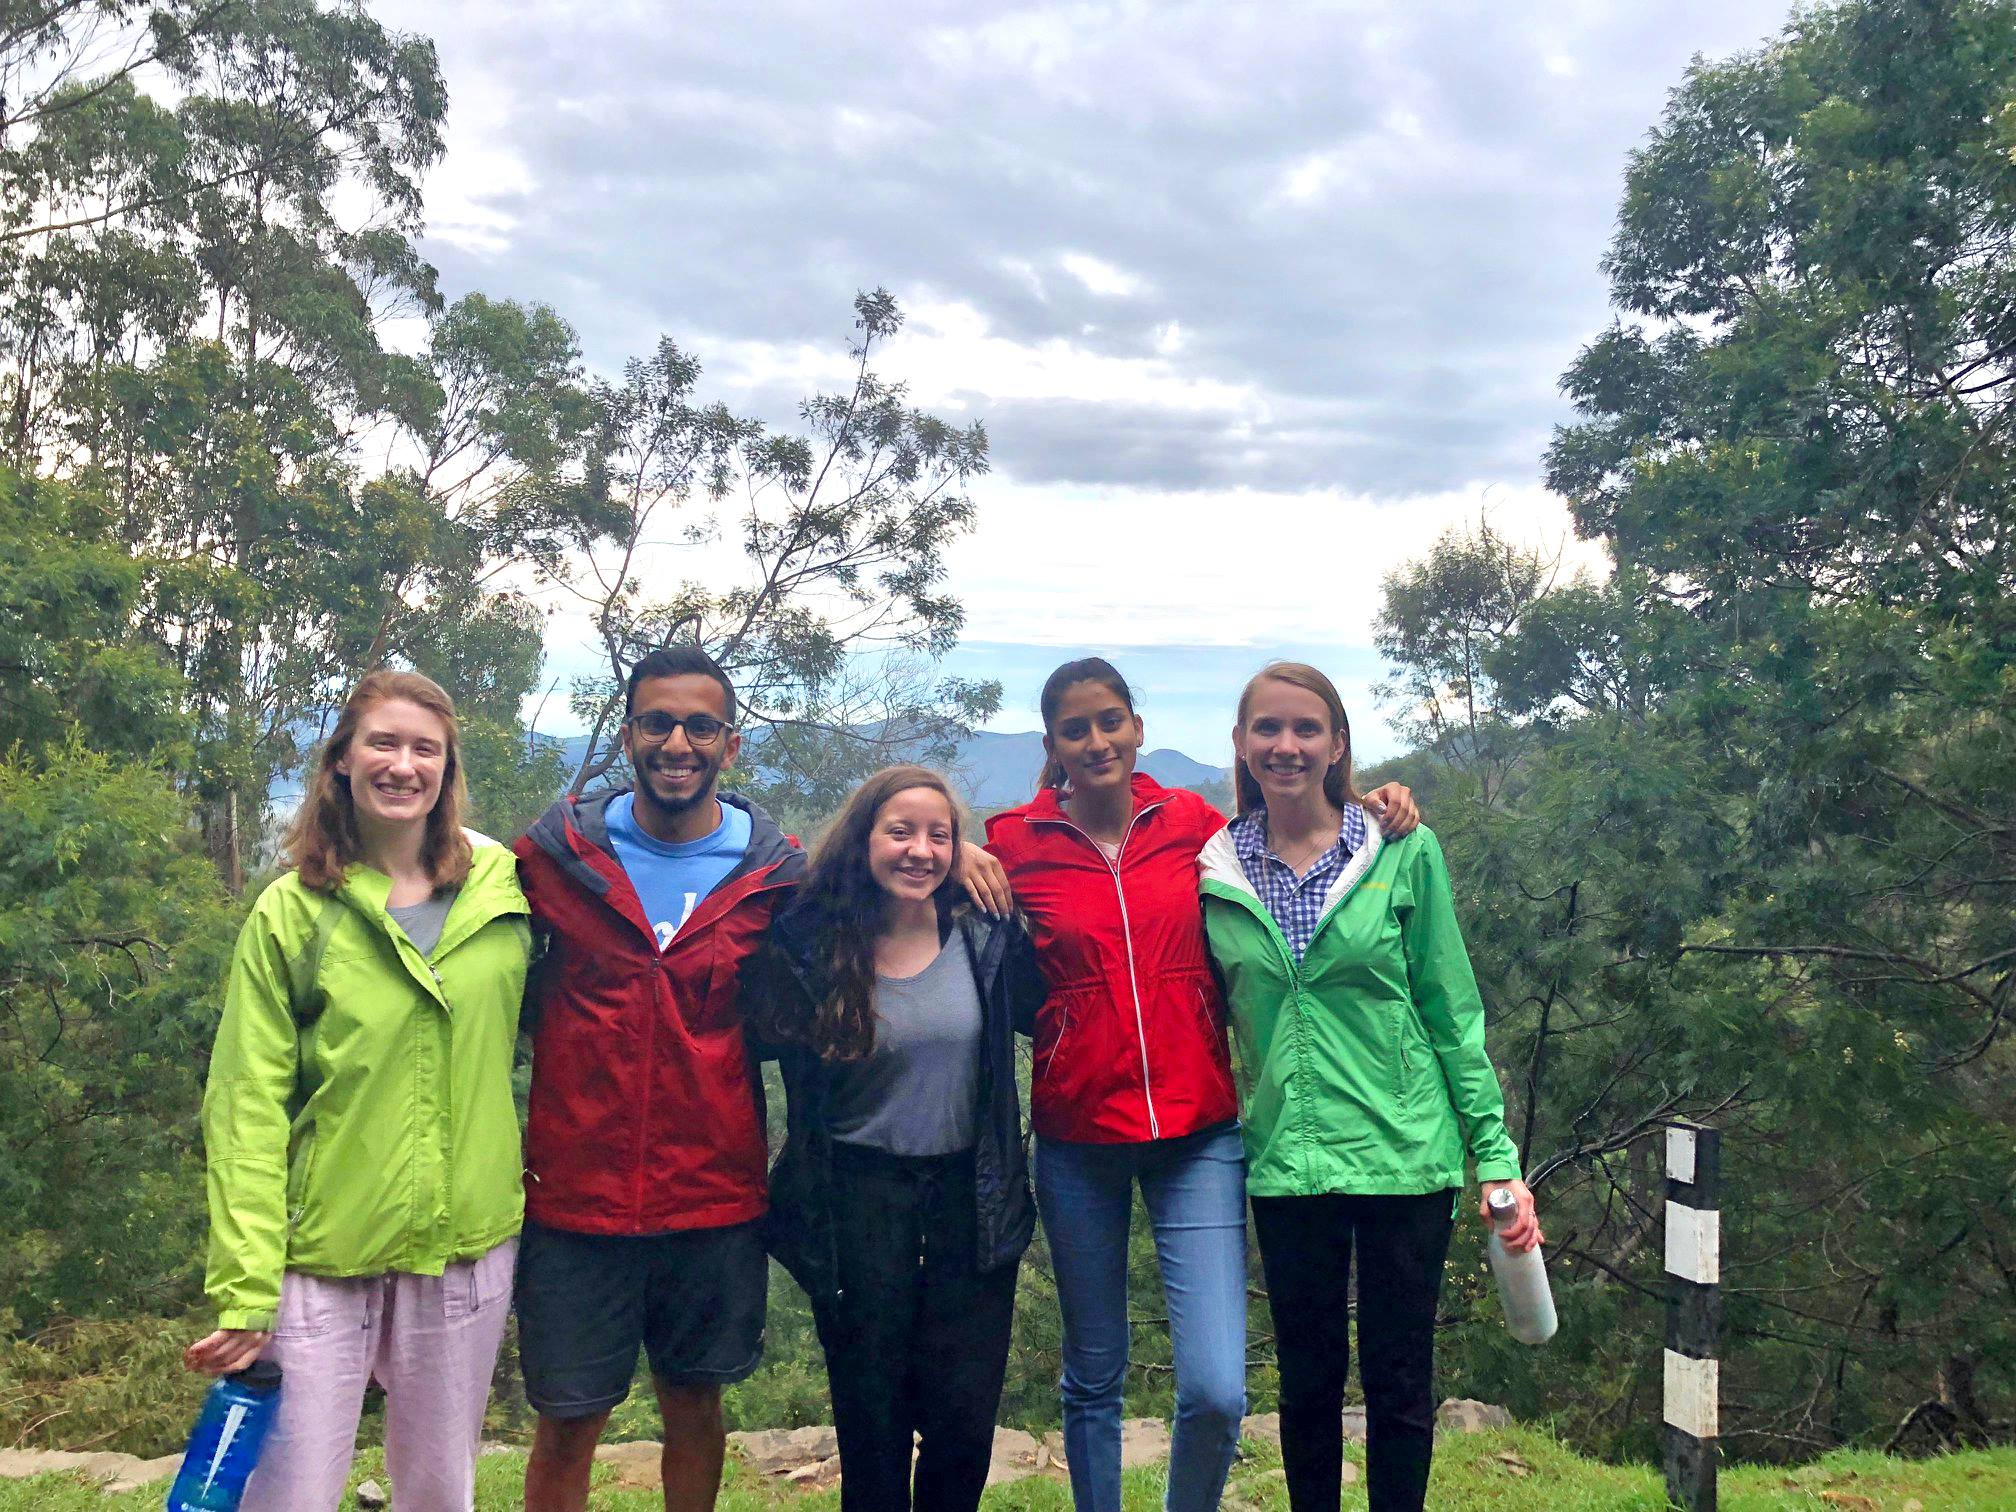 These SIHFers hit it off right when they met in Kodaikanal, India